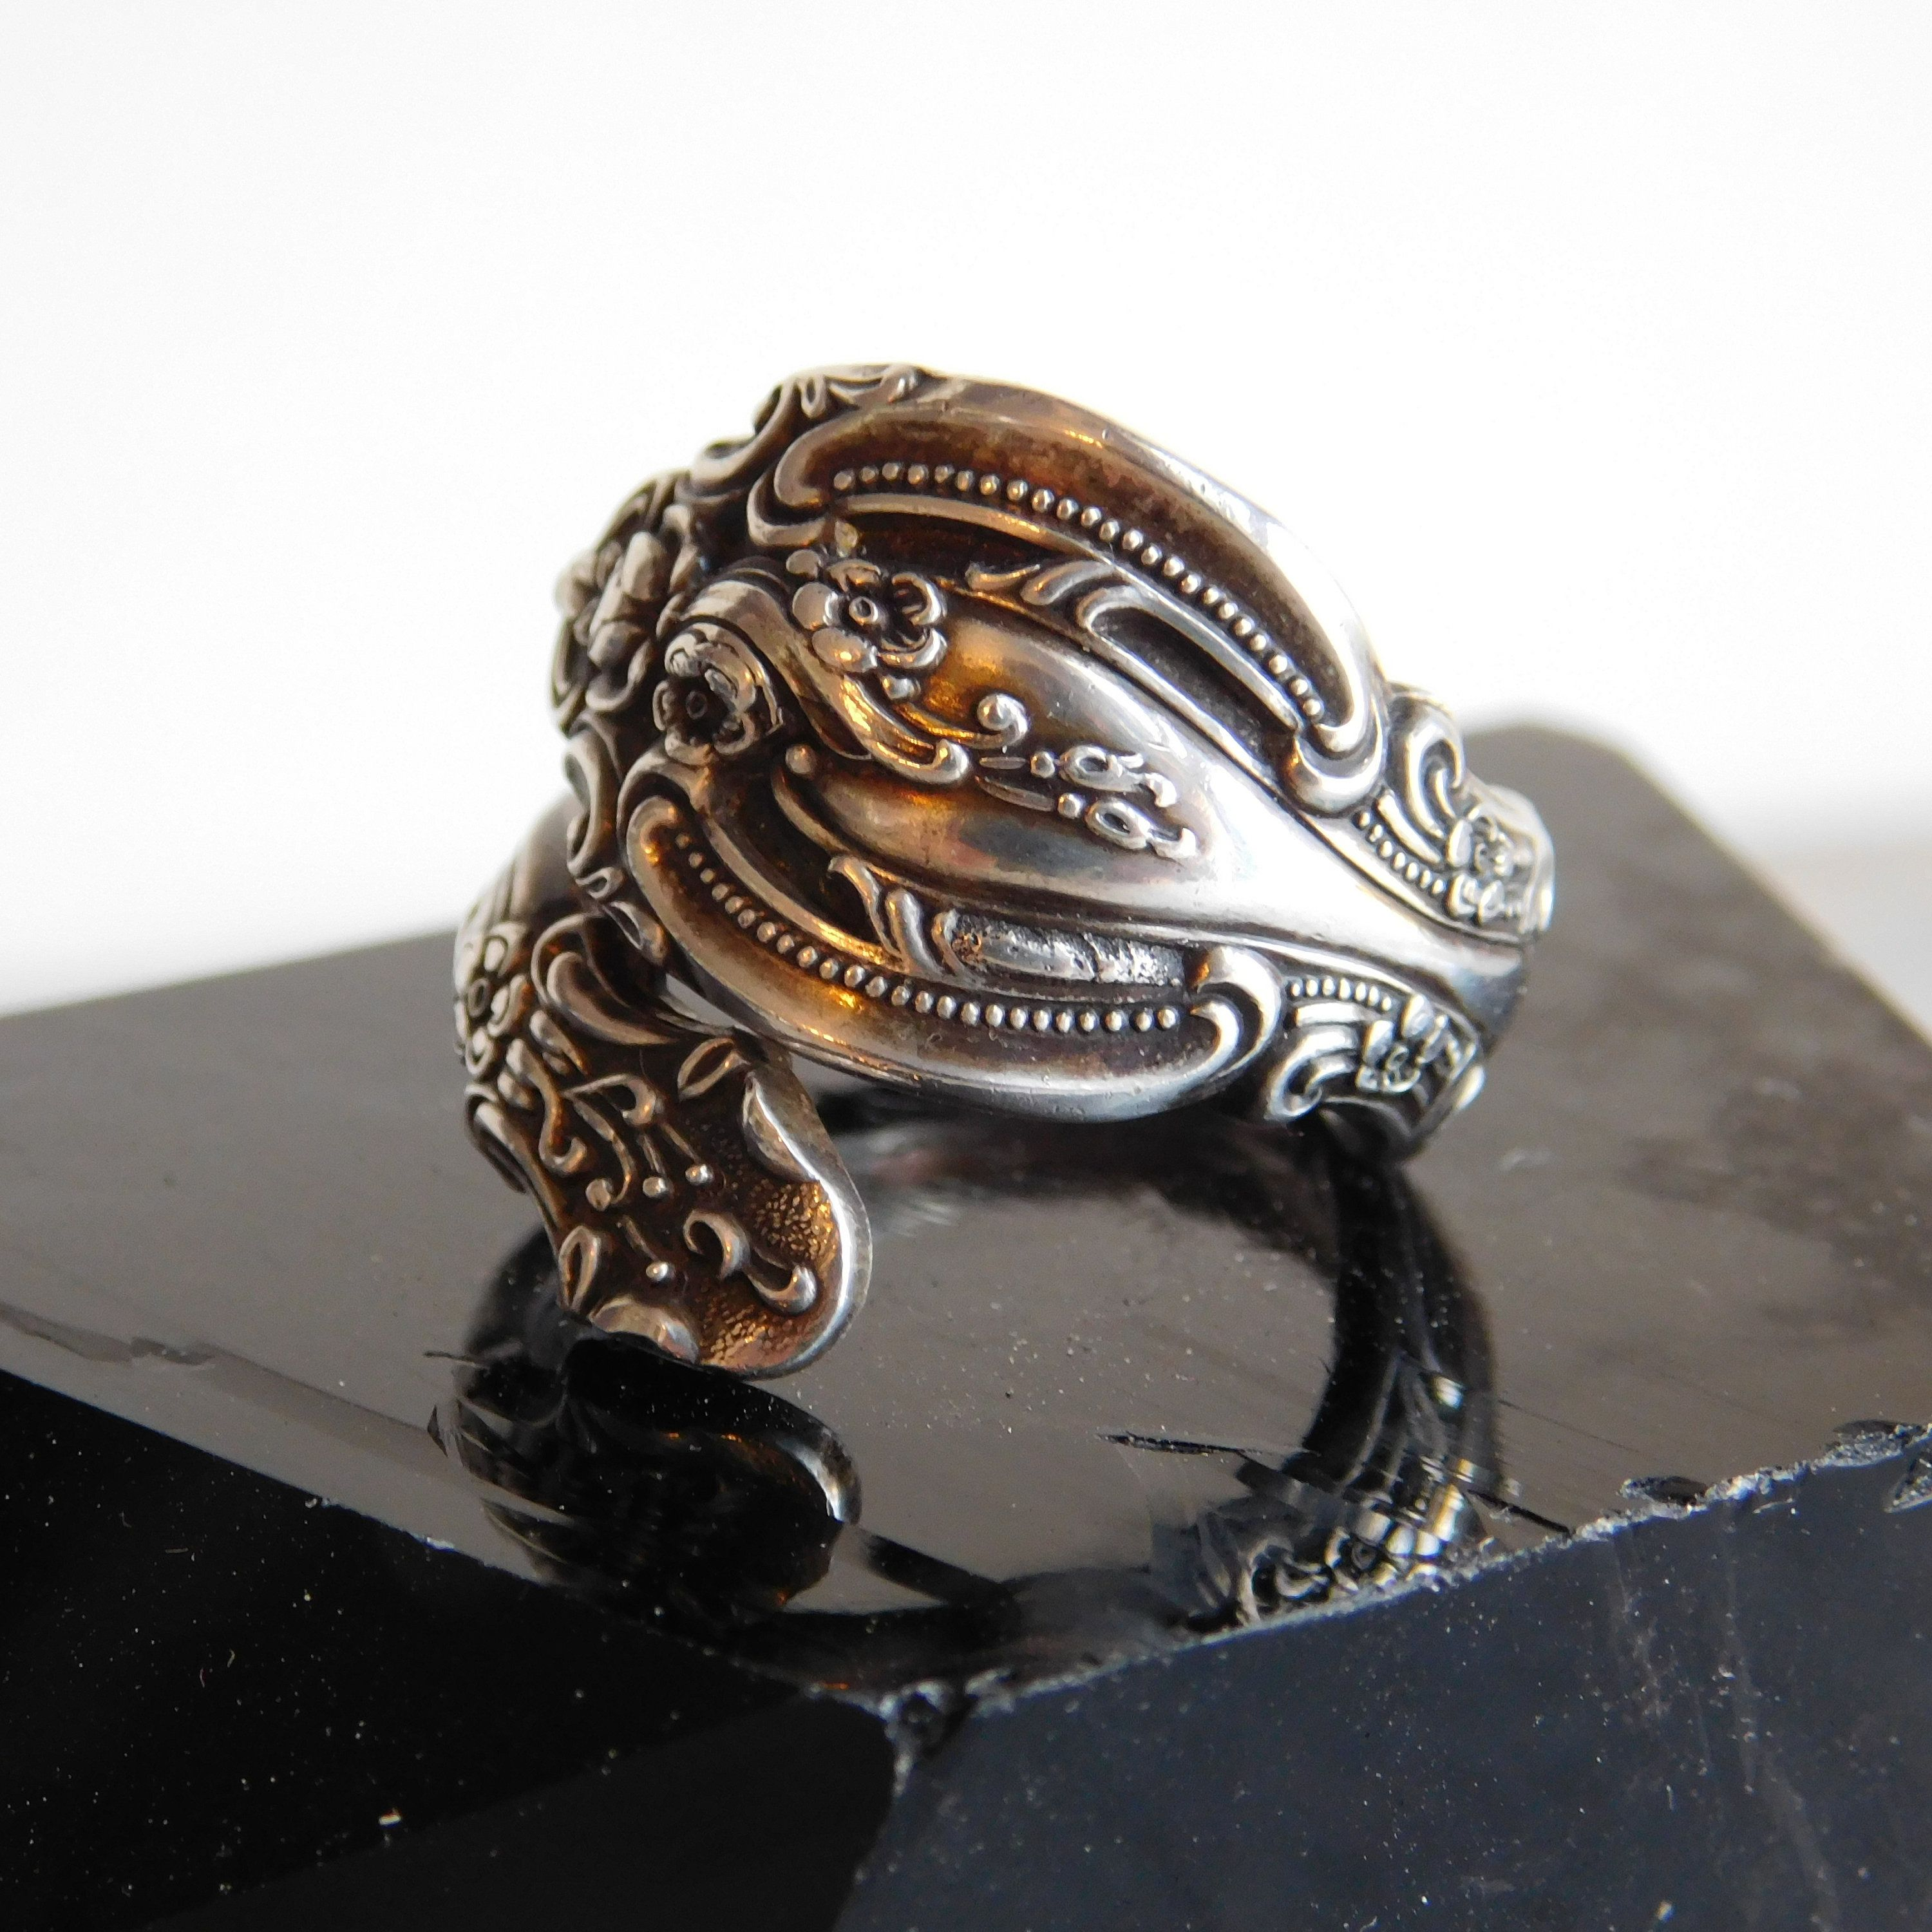 Vintage Sterling 925 Ornate Flower Bead /& Agate India Ring Size 10